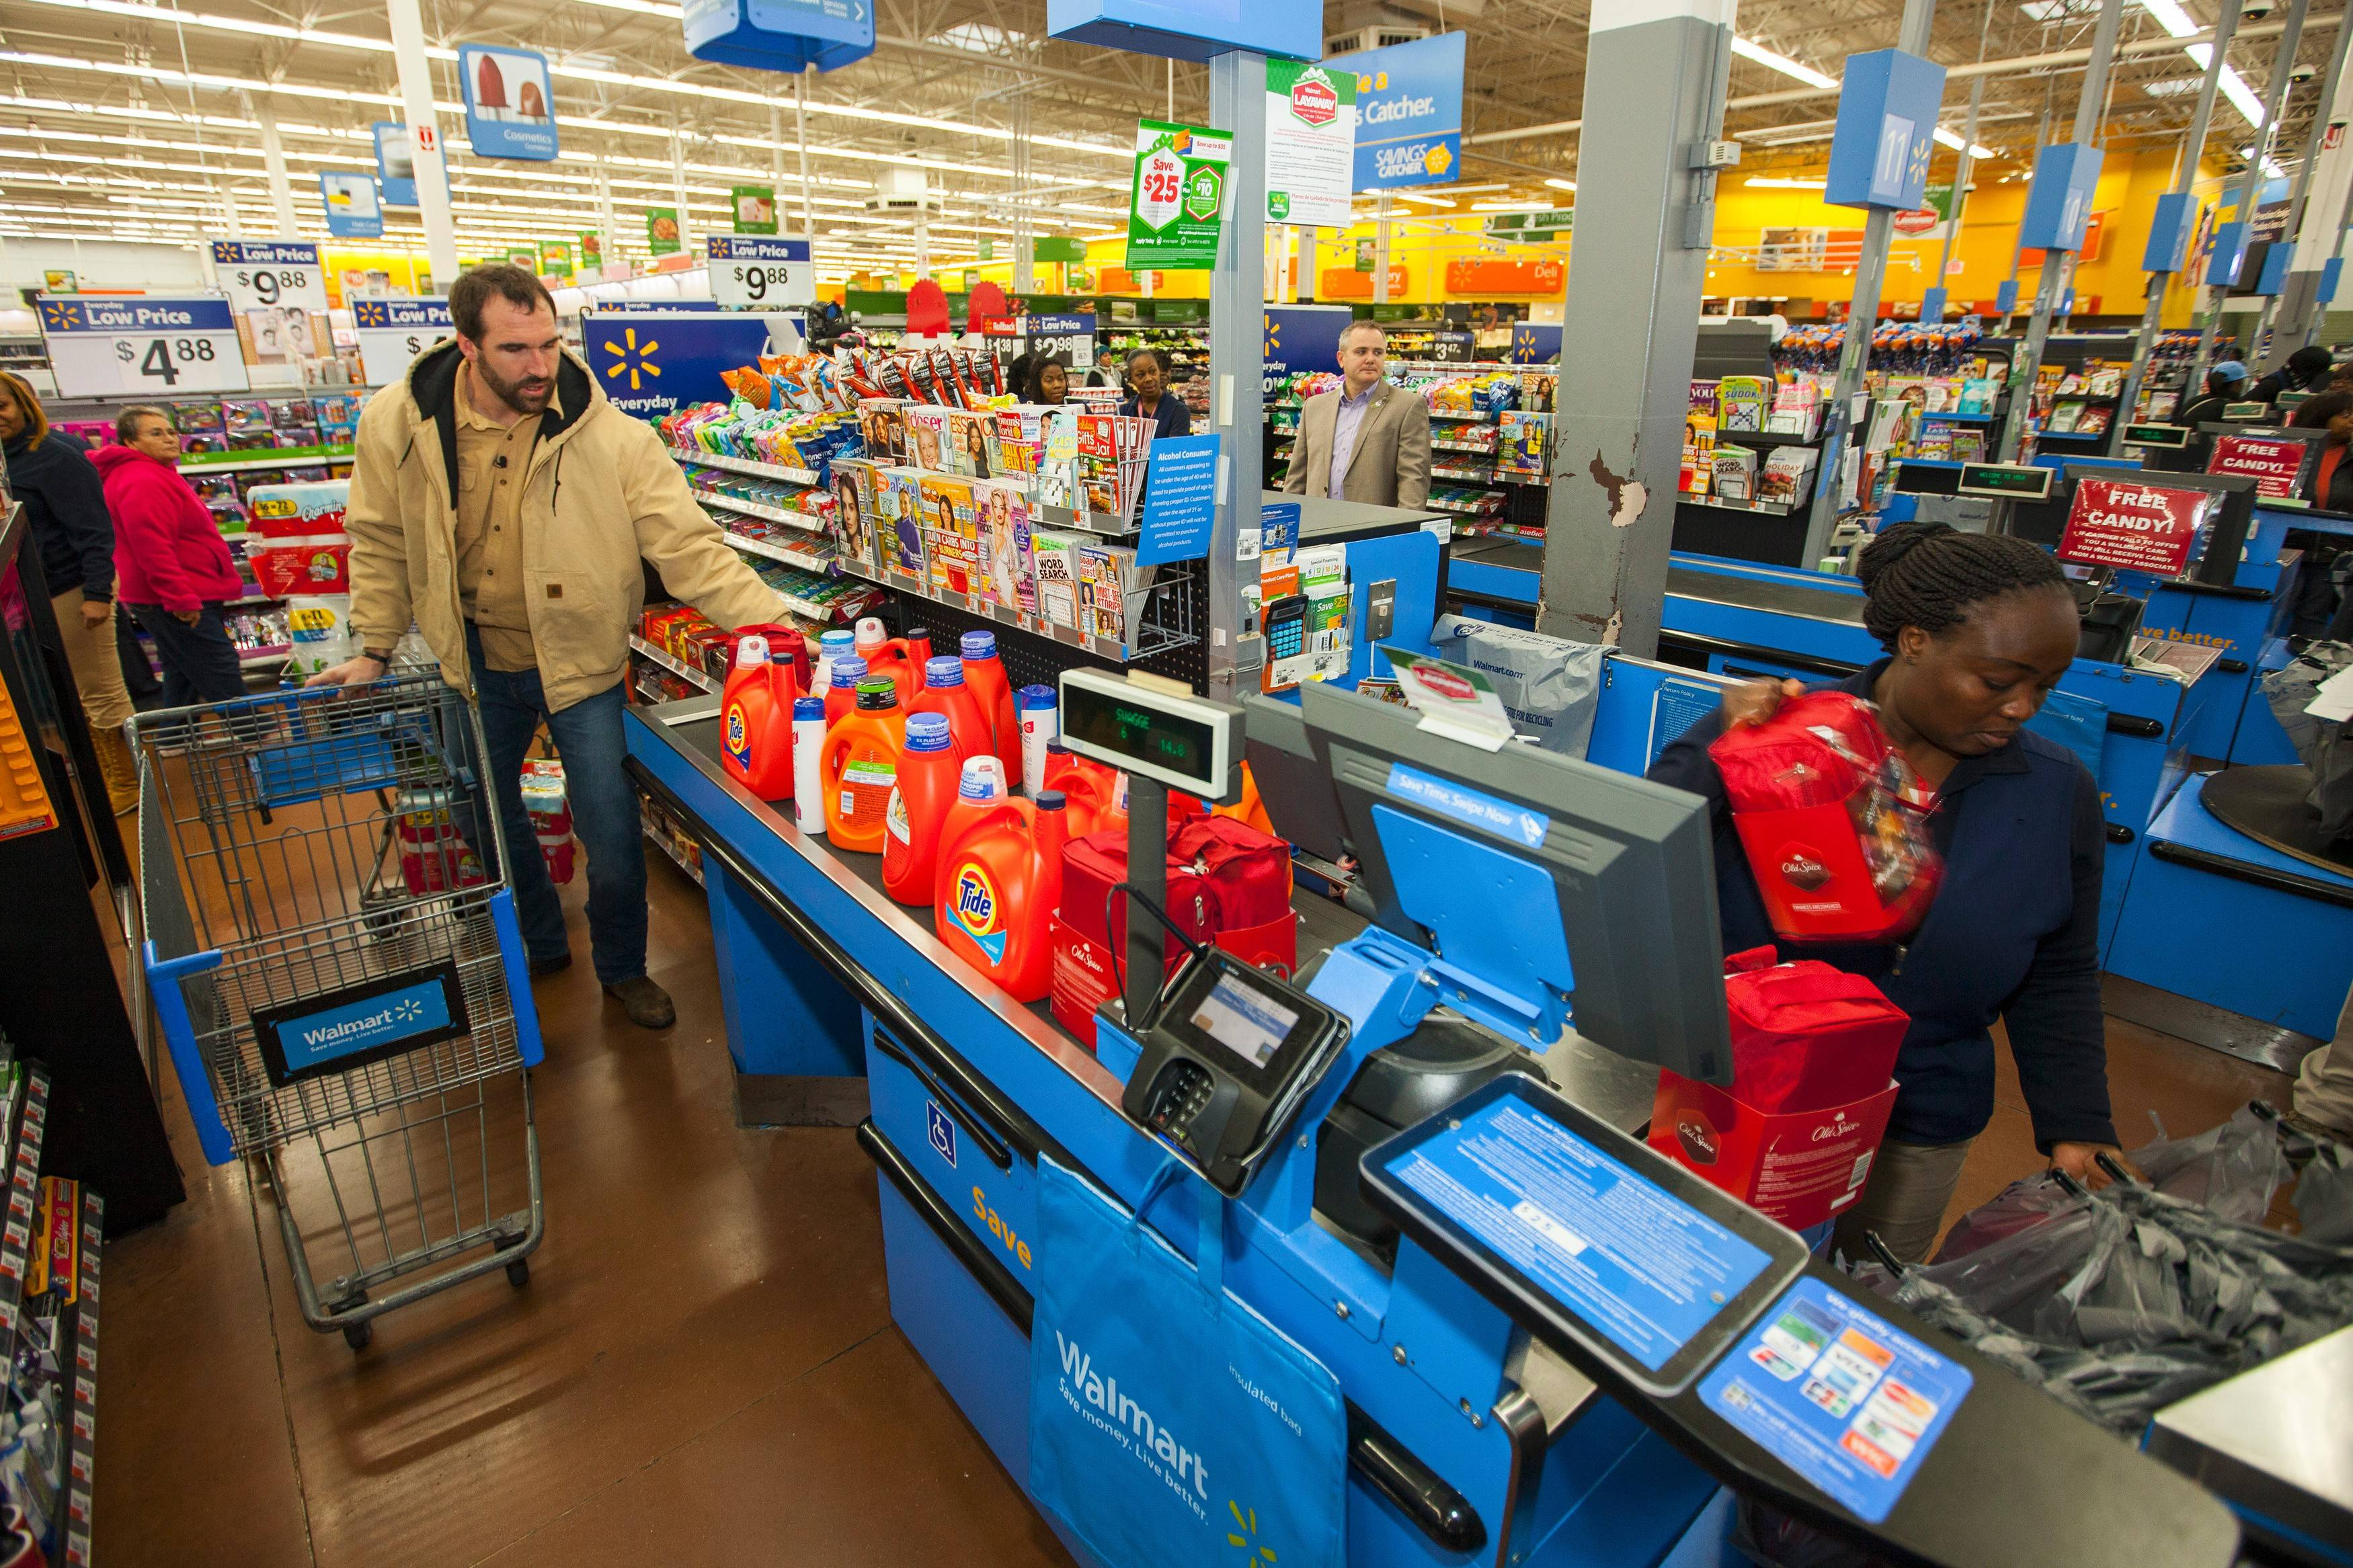 Bears defensive end Jared Allen got in the Thanksgiving spirit early, teaming up his foundation with Procter & Gamble and Walmart to provide donations in Chicago for the Eddie Beard Homeless Veterans Housing Program at Walmart on Nov. 11.